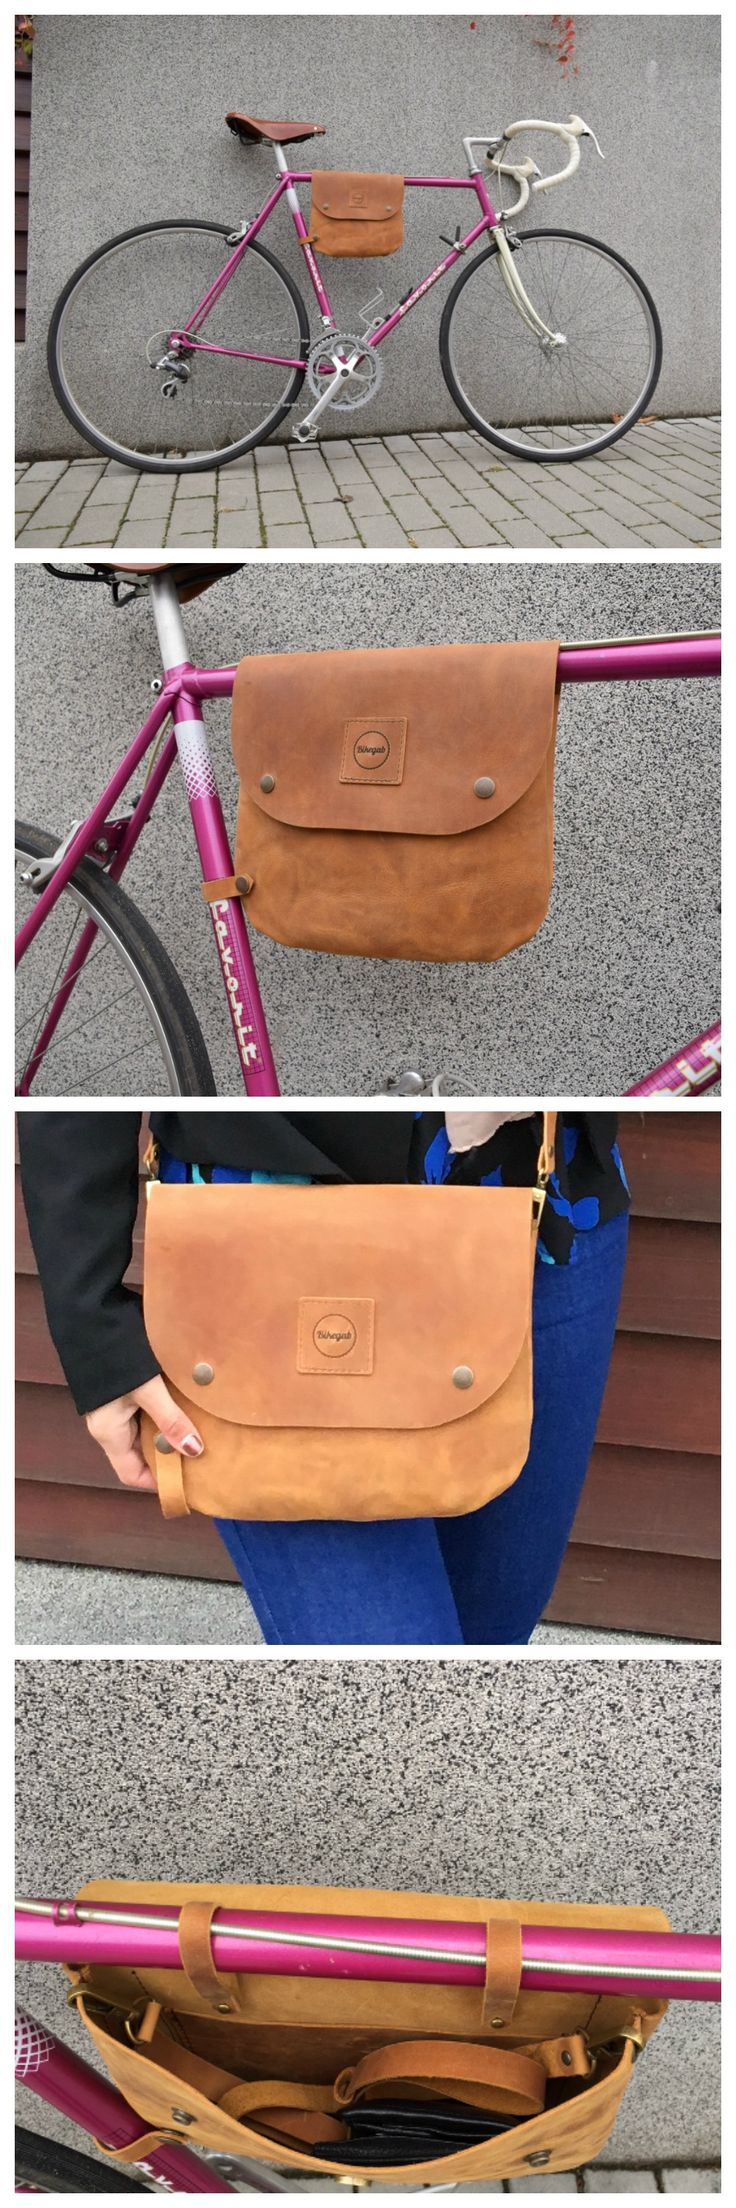 Make commuting easy with this leather frame bag for bicycle by Souma Leather